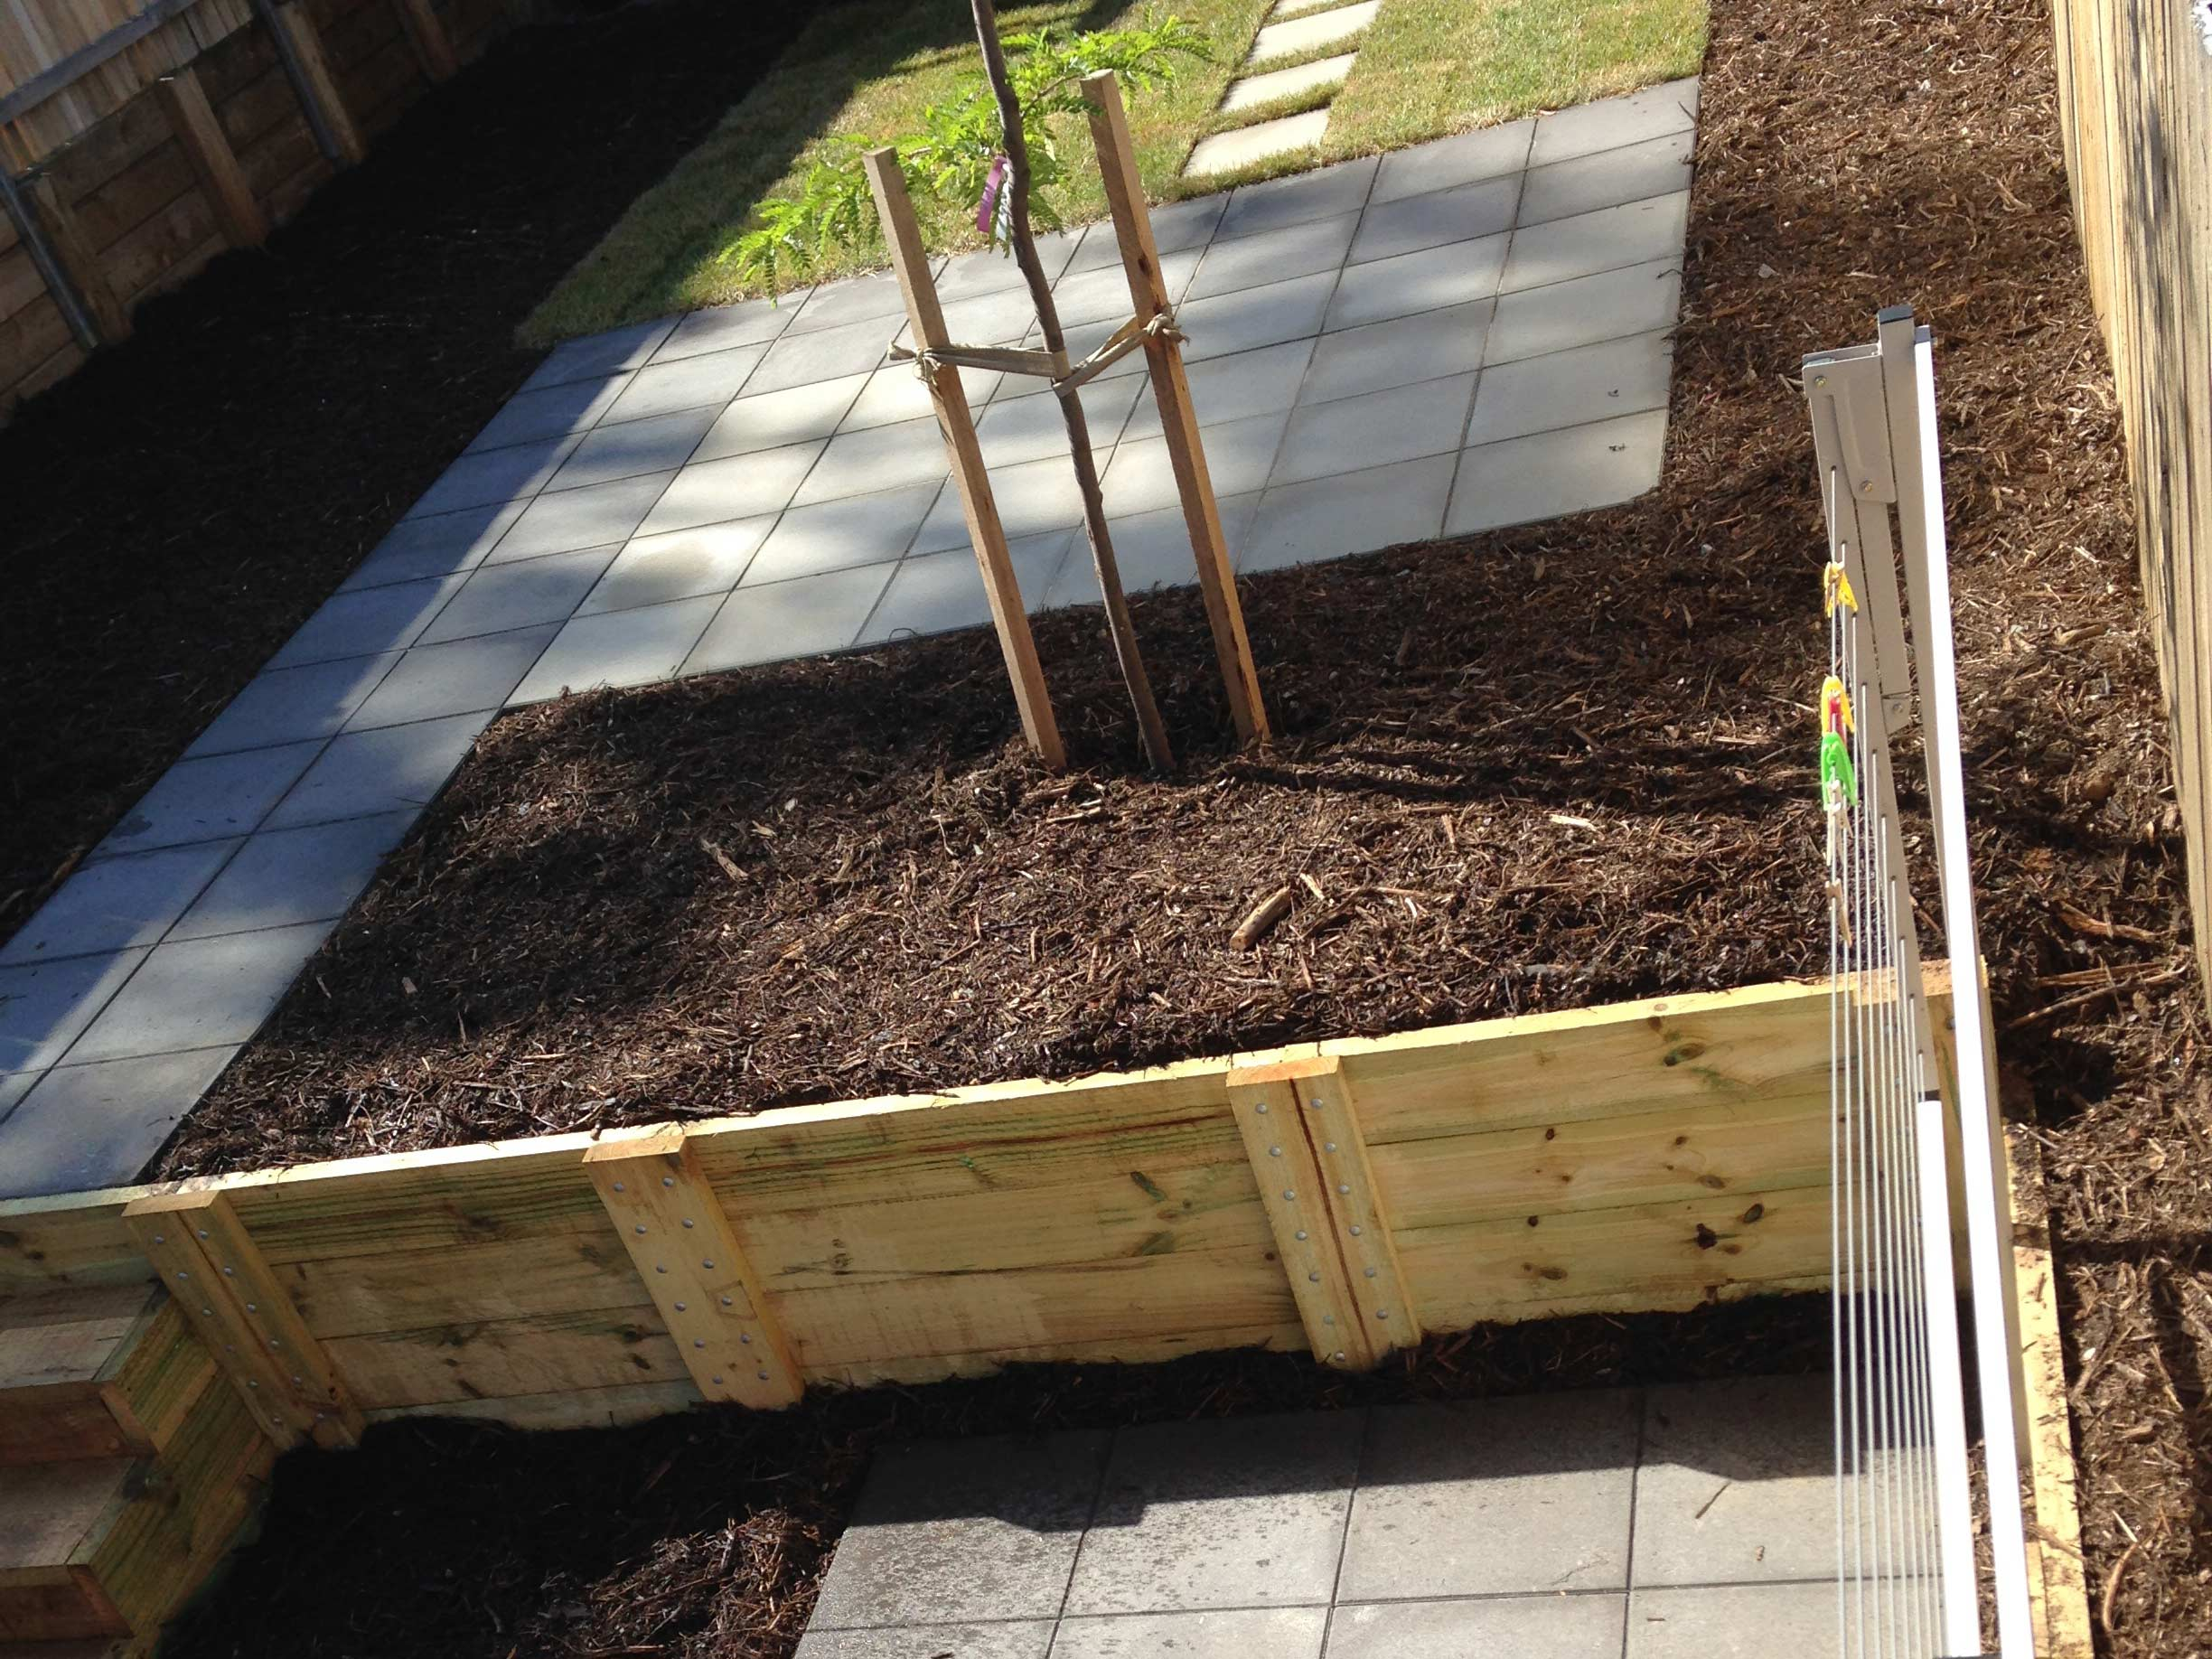 Tay Street, ACT. Paving, Turfing, Gardening and Retaining Wall 2